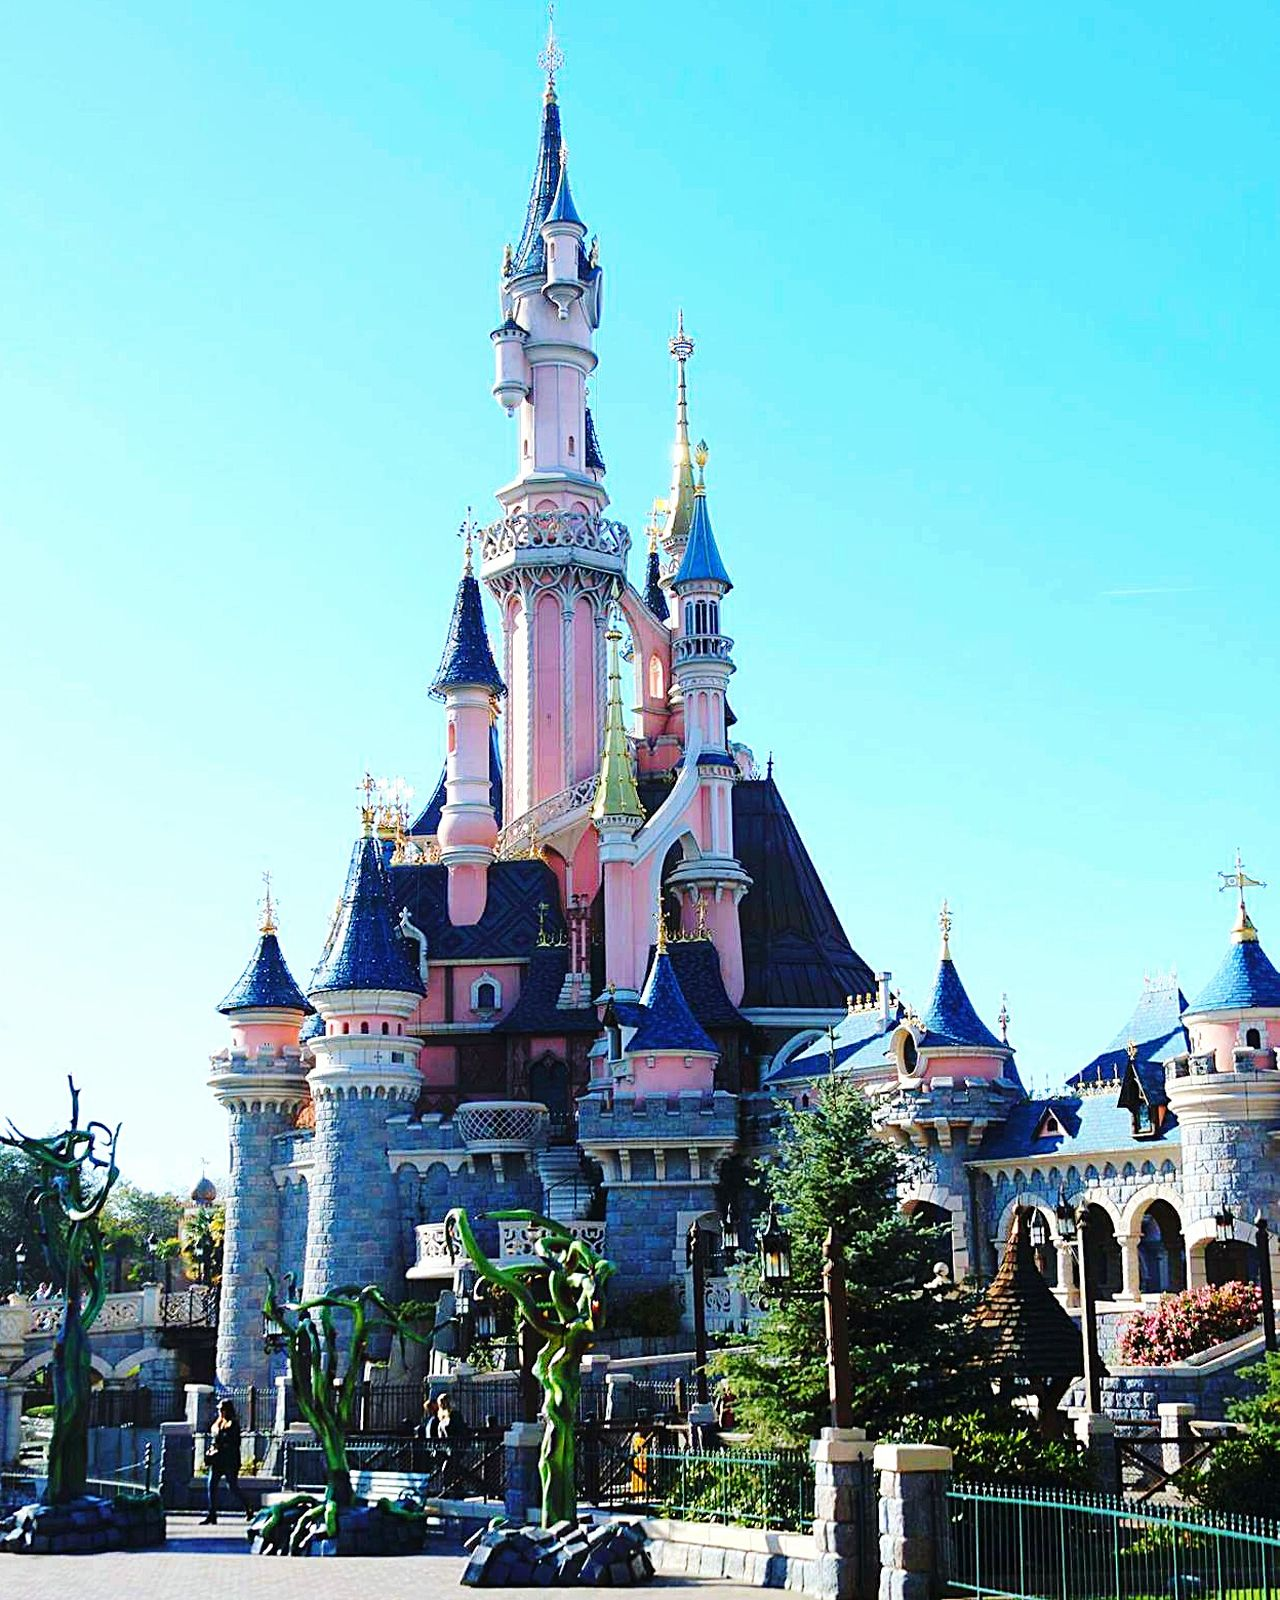 Architecture Travel Destinations Travel Sky Cultures City Vacations Day Outdoors Disneyland Resort Paris Disney Disneyland Disneyland Paris